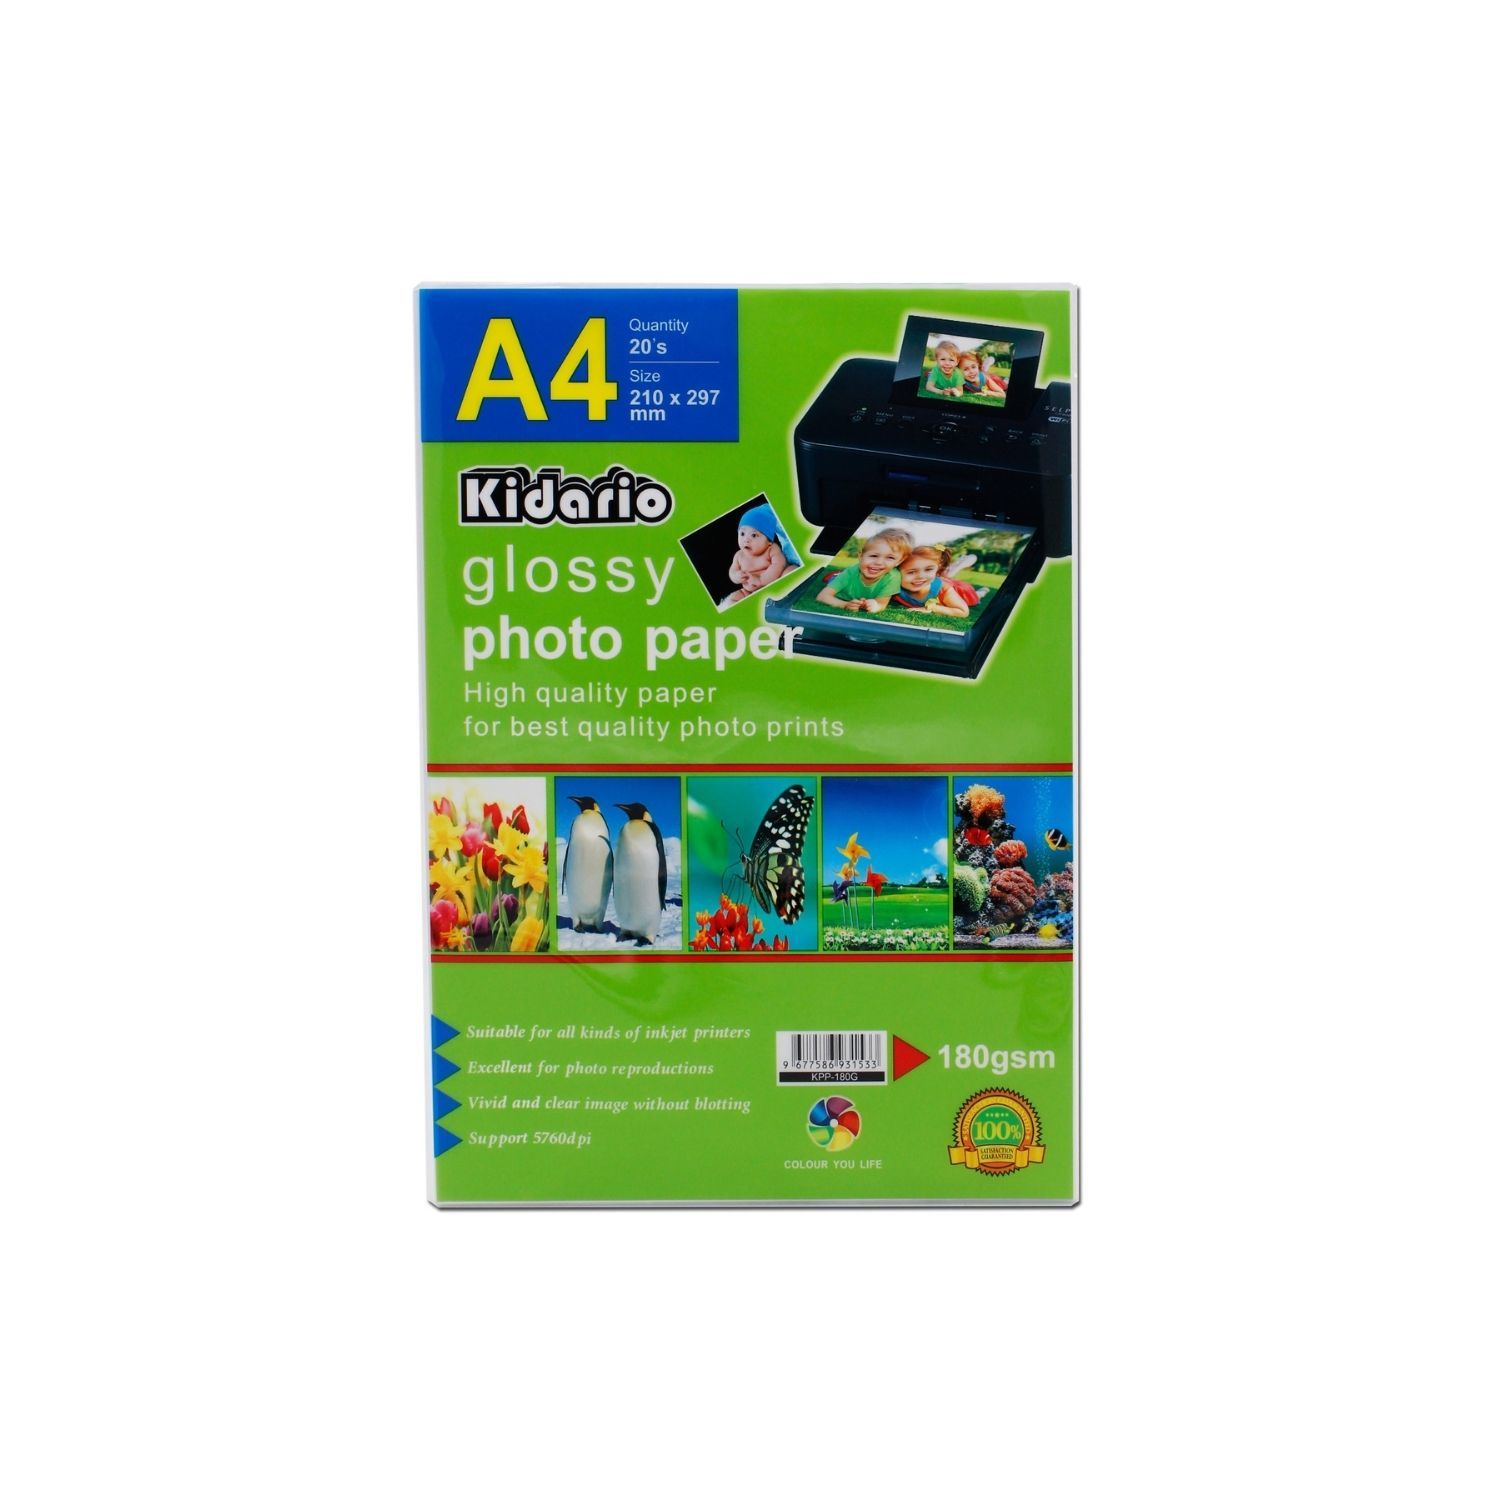 Kidario Glossy Photo Paper (A4) 180gsm 20sheets...jpg